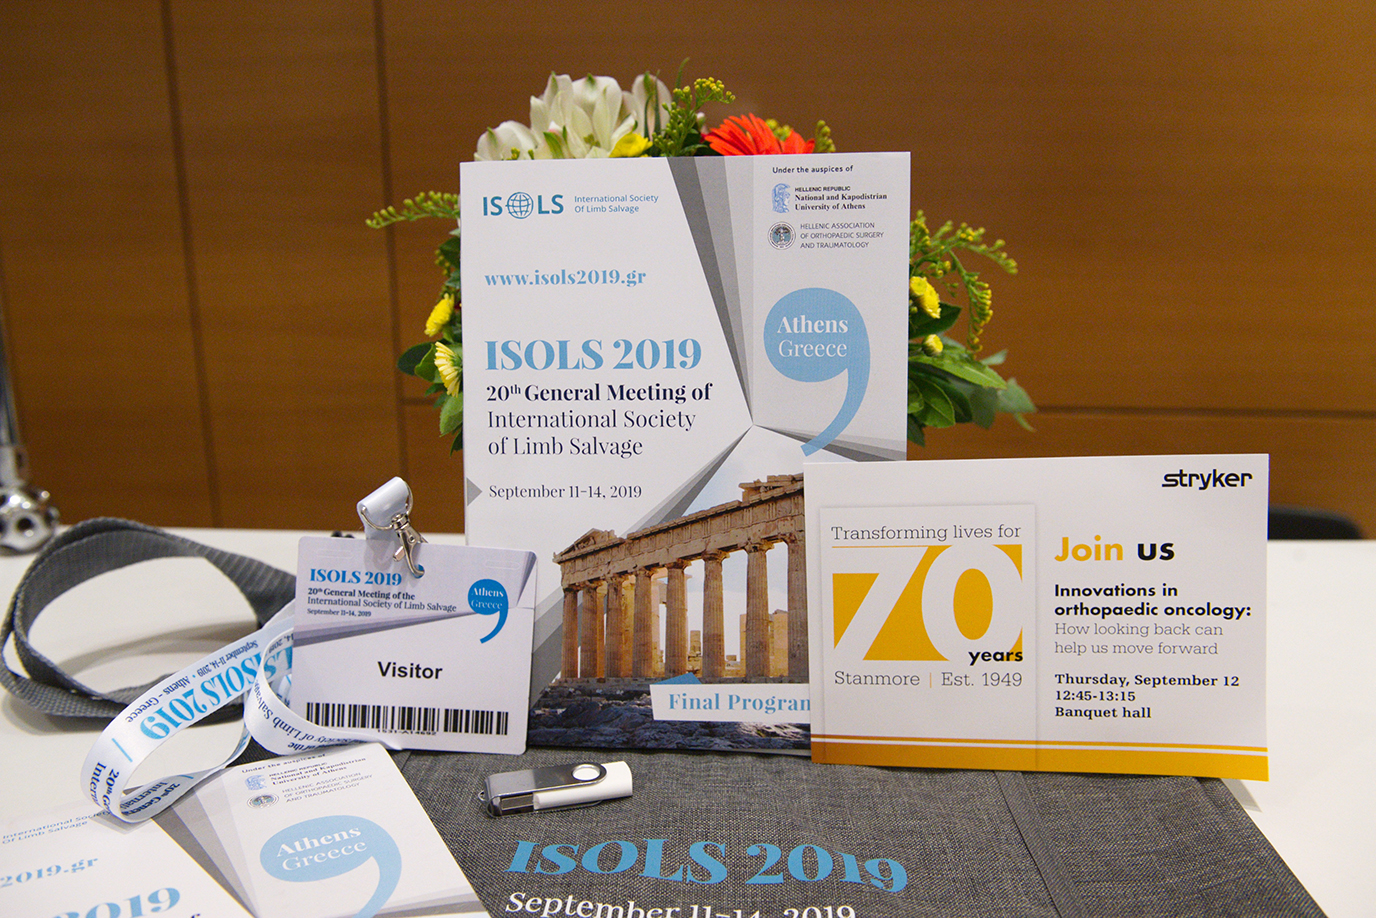 ISOLS2019 | 20th General Meeting of the International Society of Limb Salvage